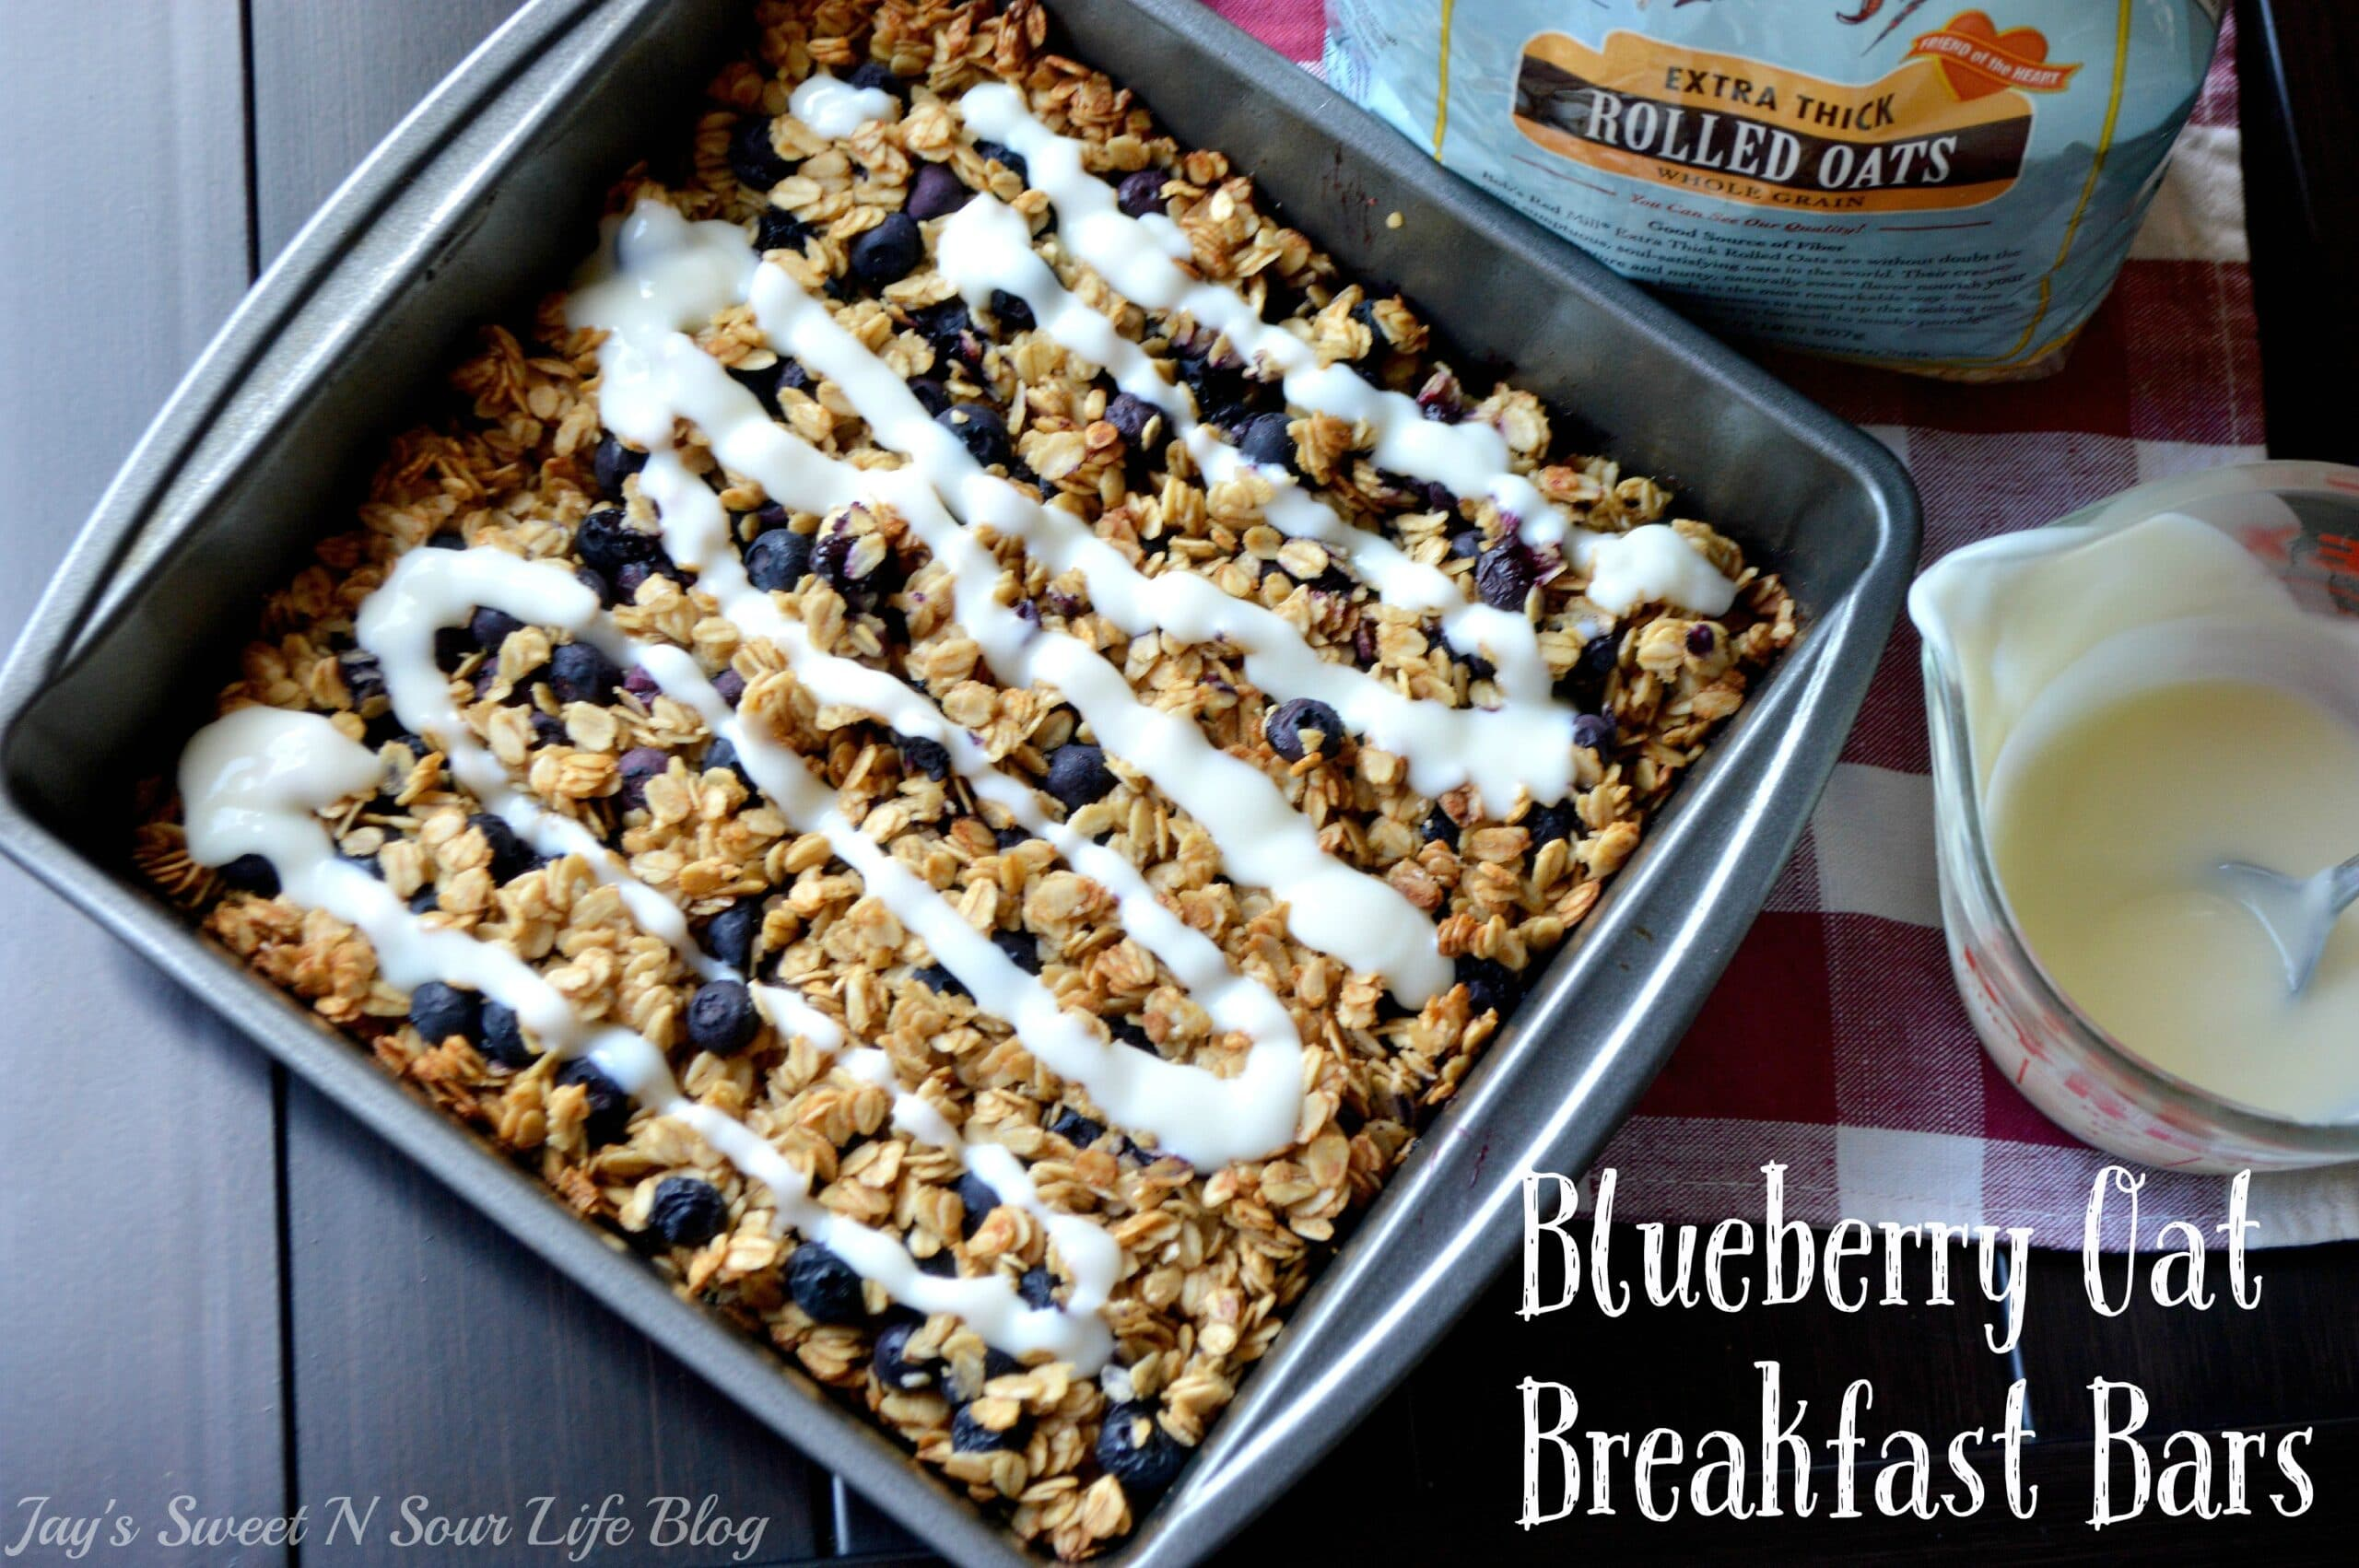 Blueberry Oat Breakfast Bars